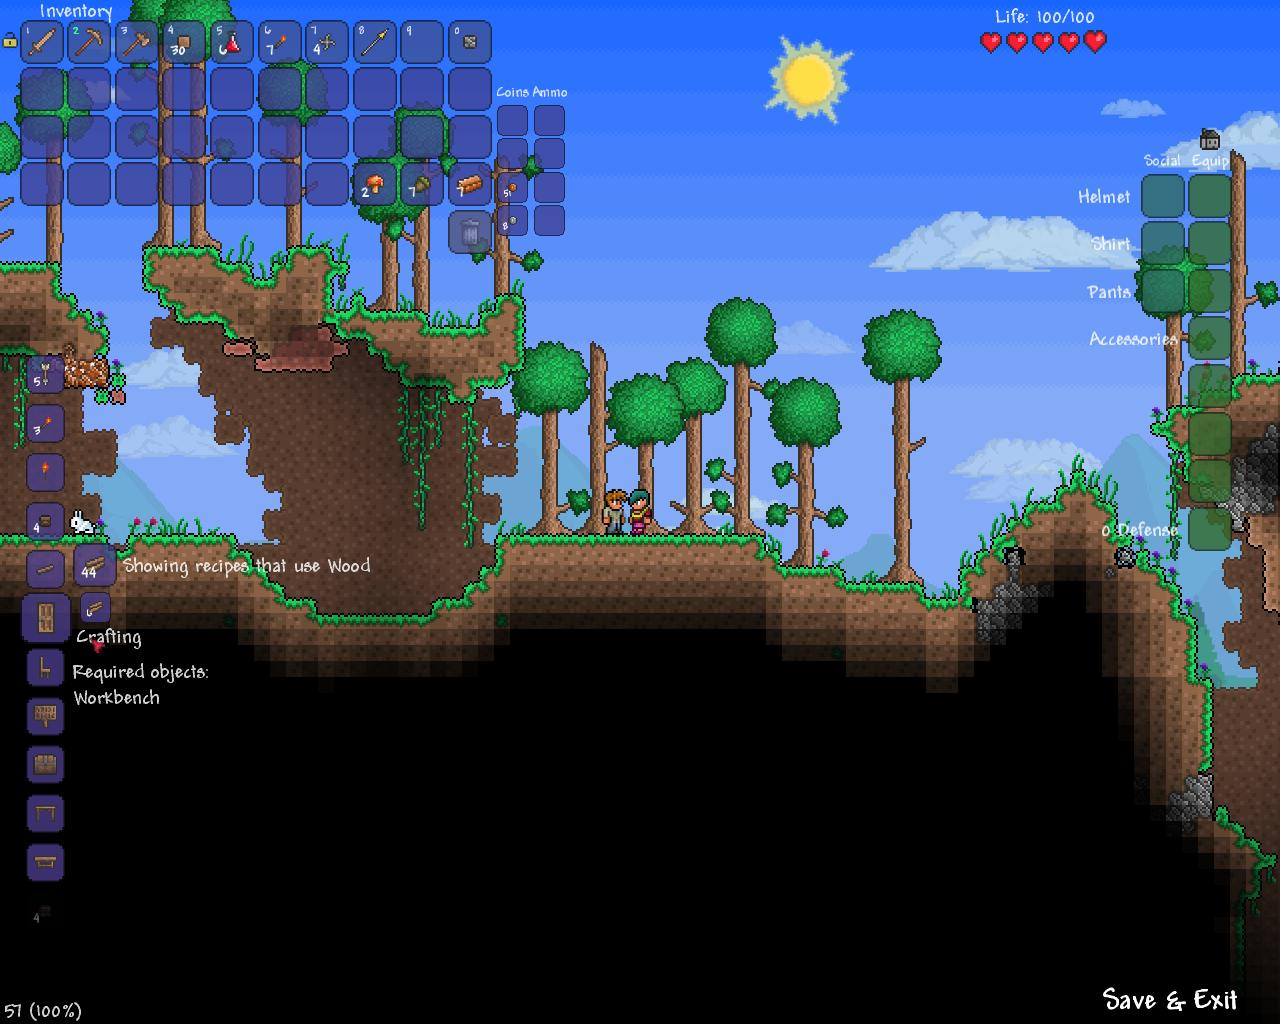 I need 6 pieces of wood and a workbench to craft a simple door  sc 1 st  tower defense - GamesWarp & buzz.GamesWarp.com » Terraria